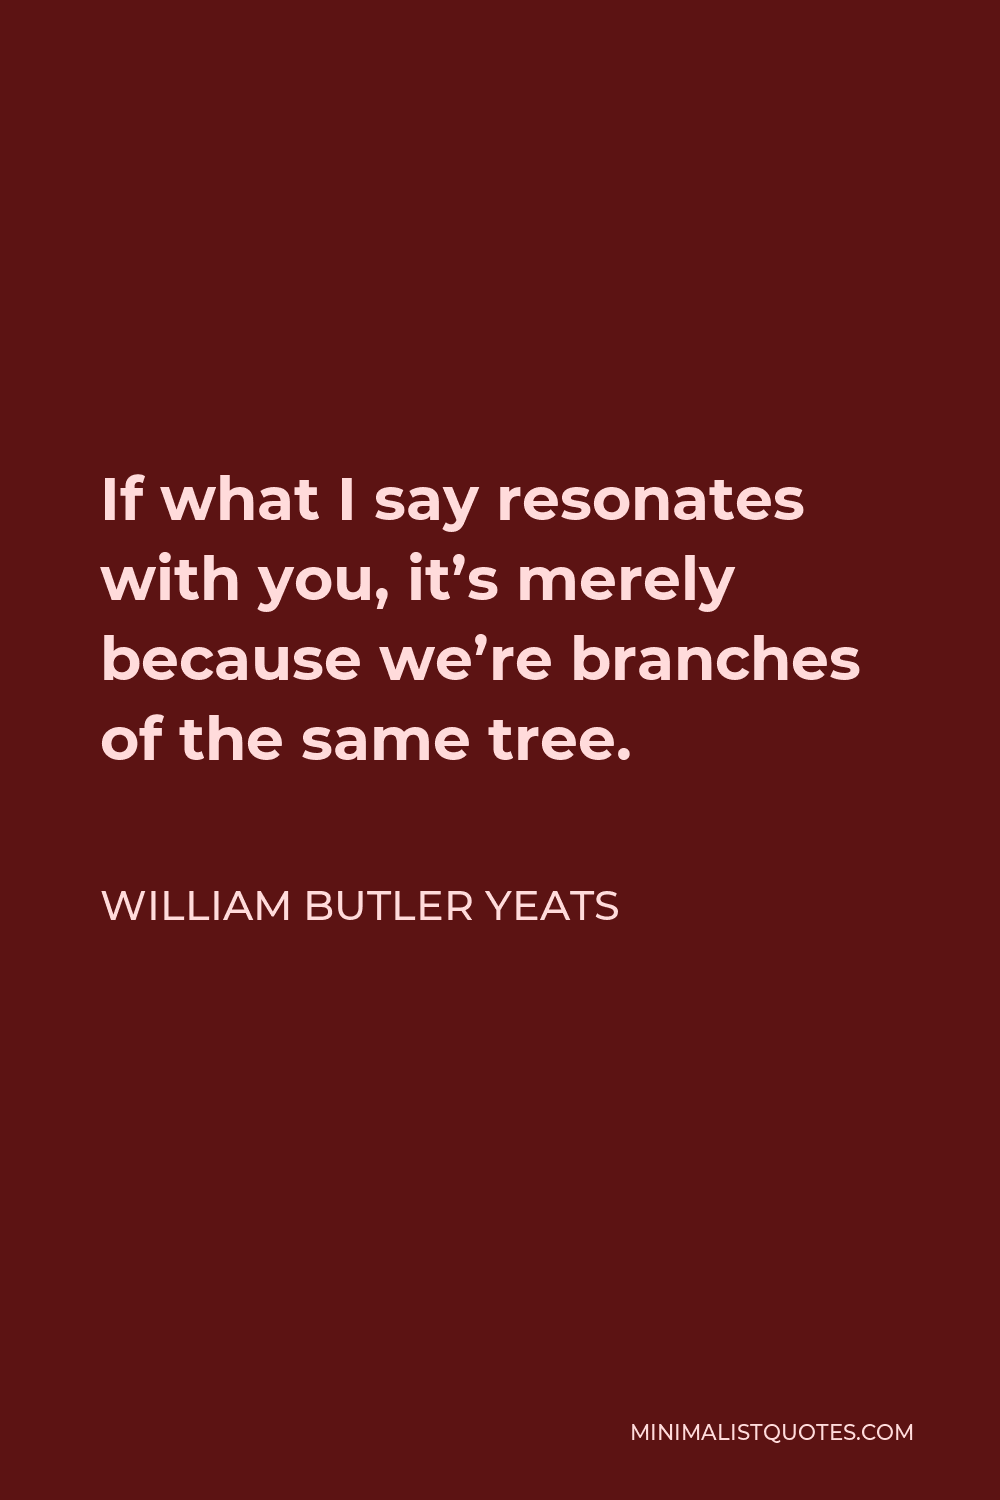 William Butler Yeats Quote - If what I say resonates with you, it's merely because we're branches of the same tree.